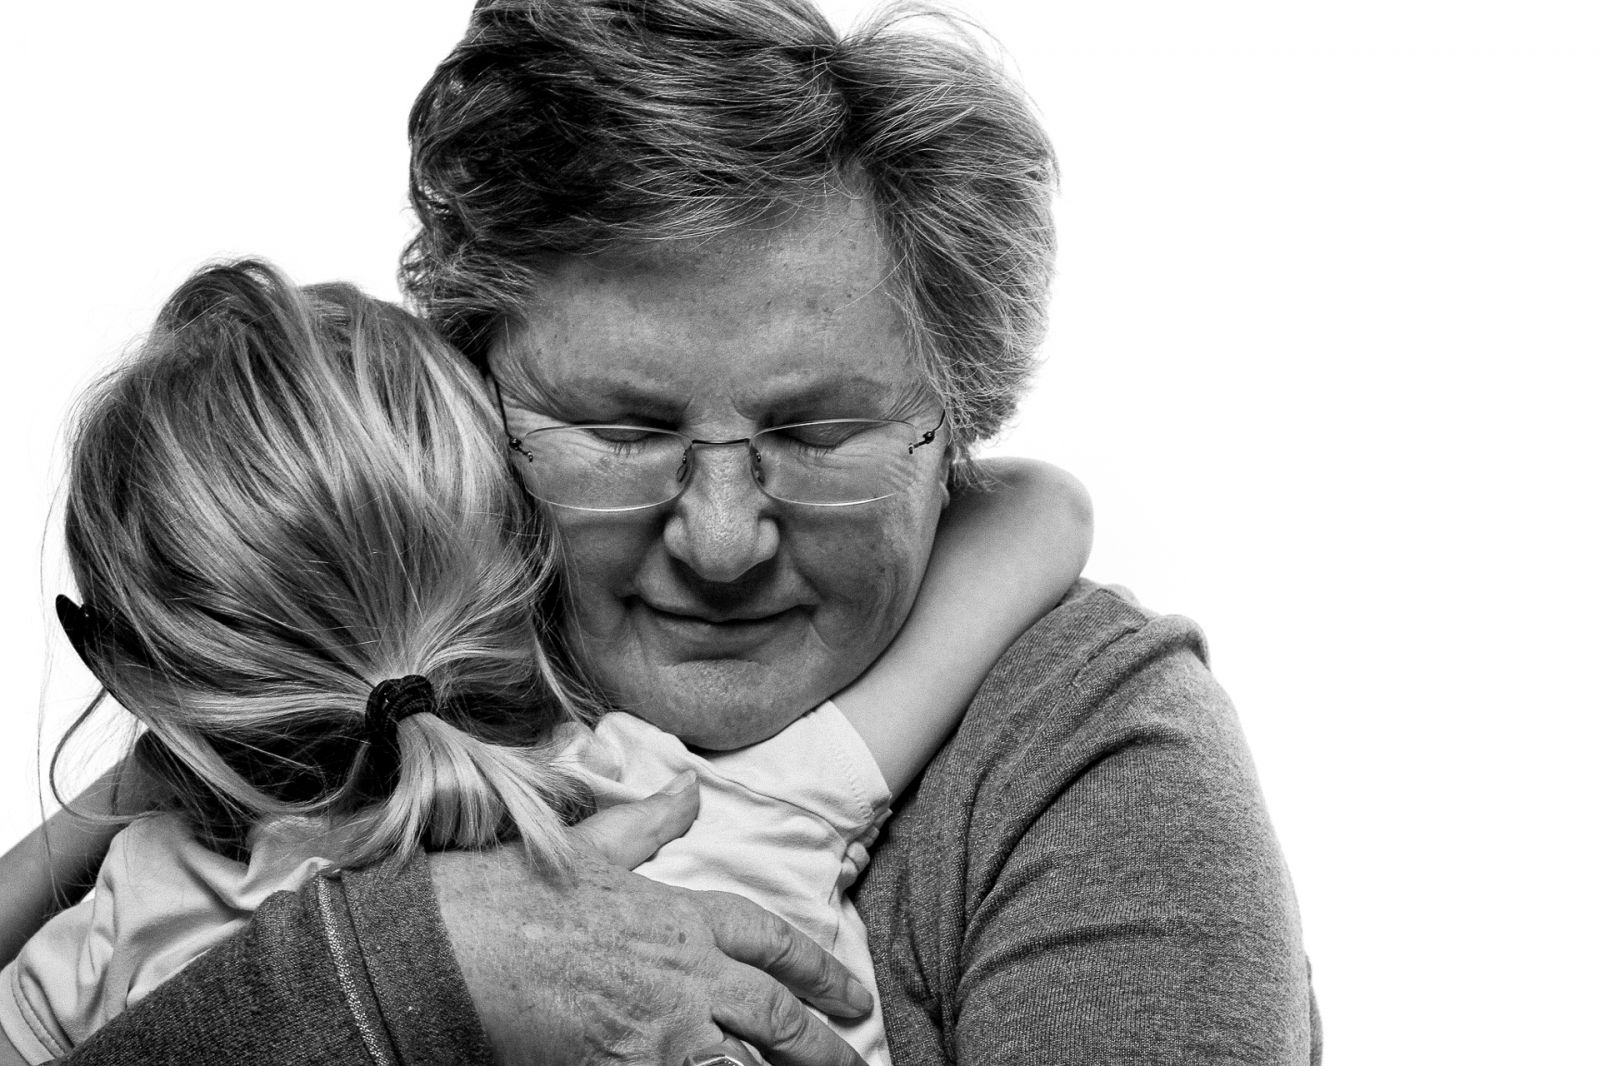 Grandmother hugging her granddaughter, black and white studios photograph with emotion